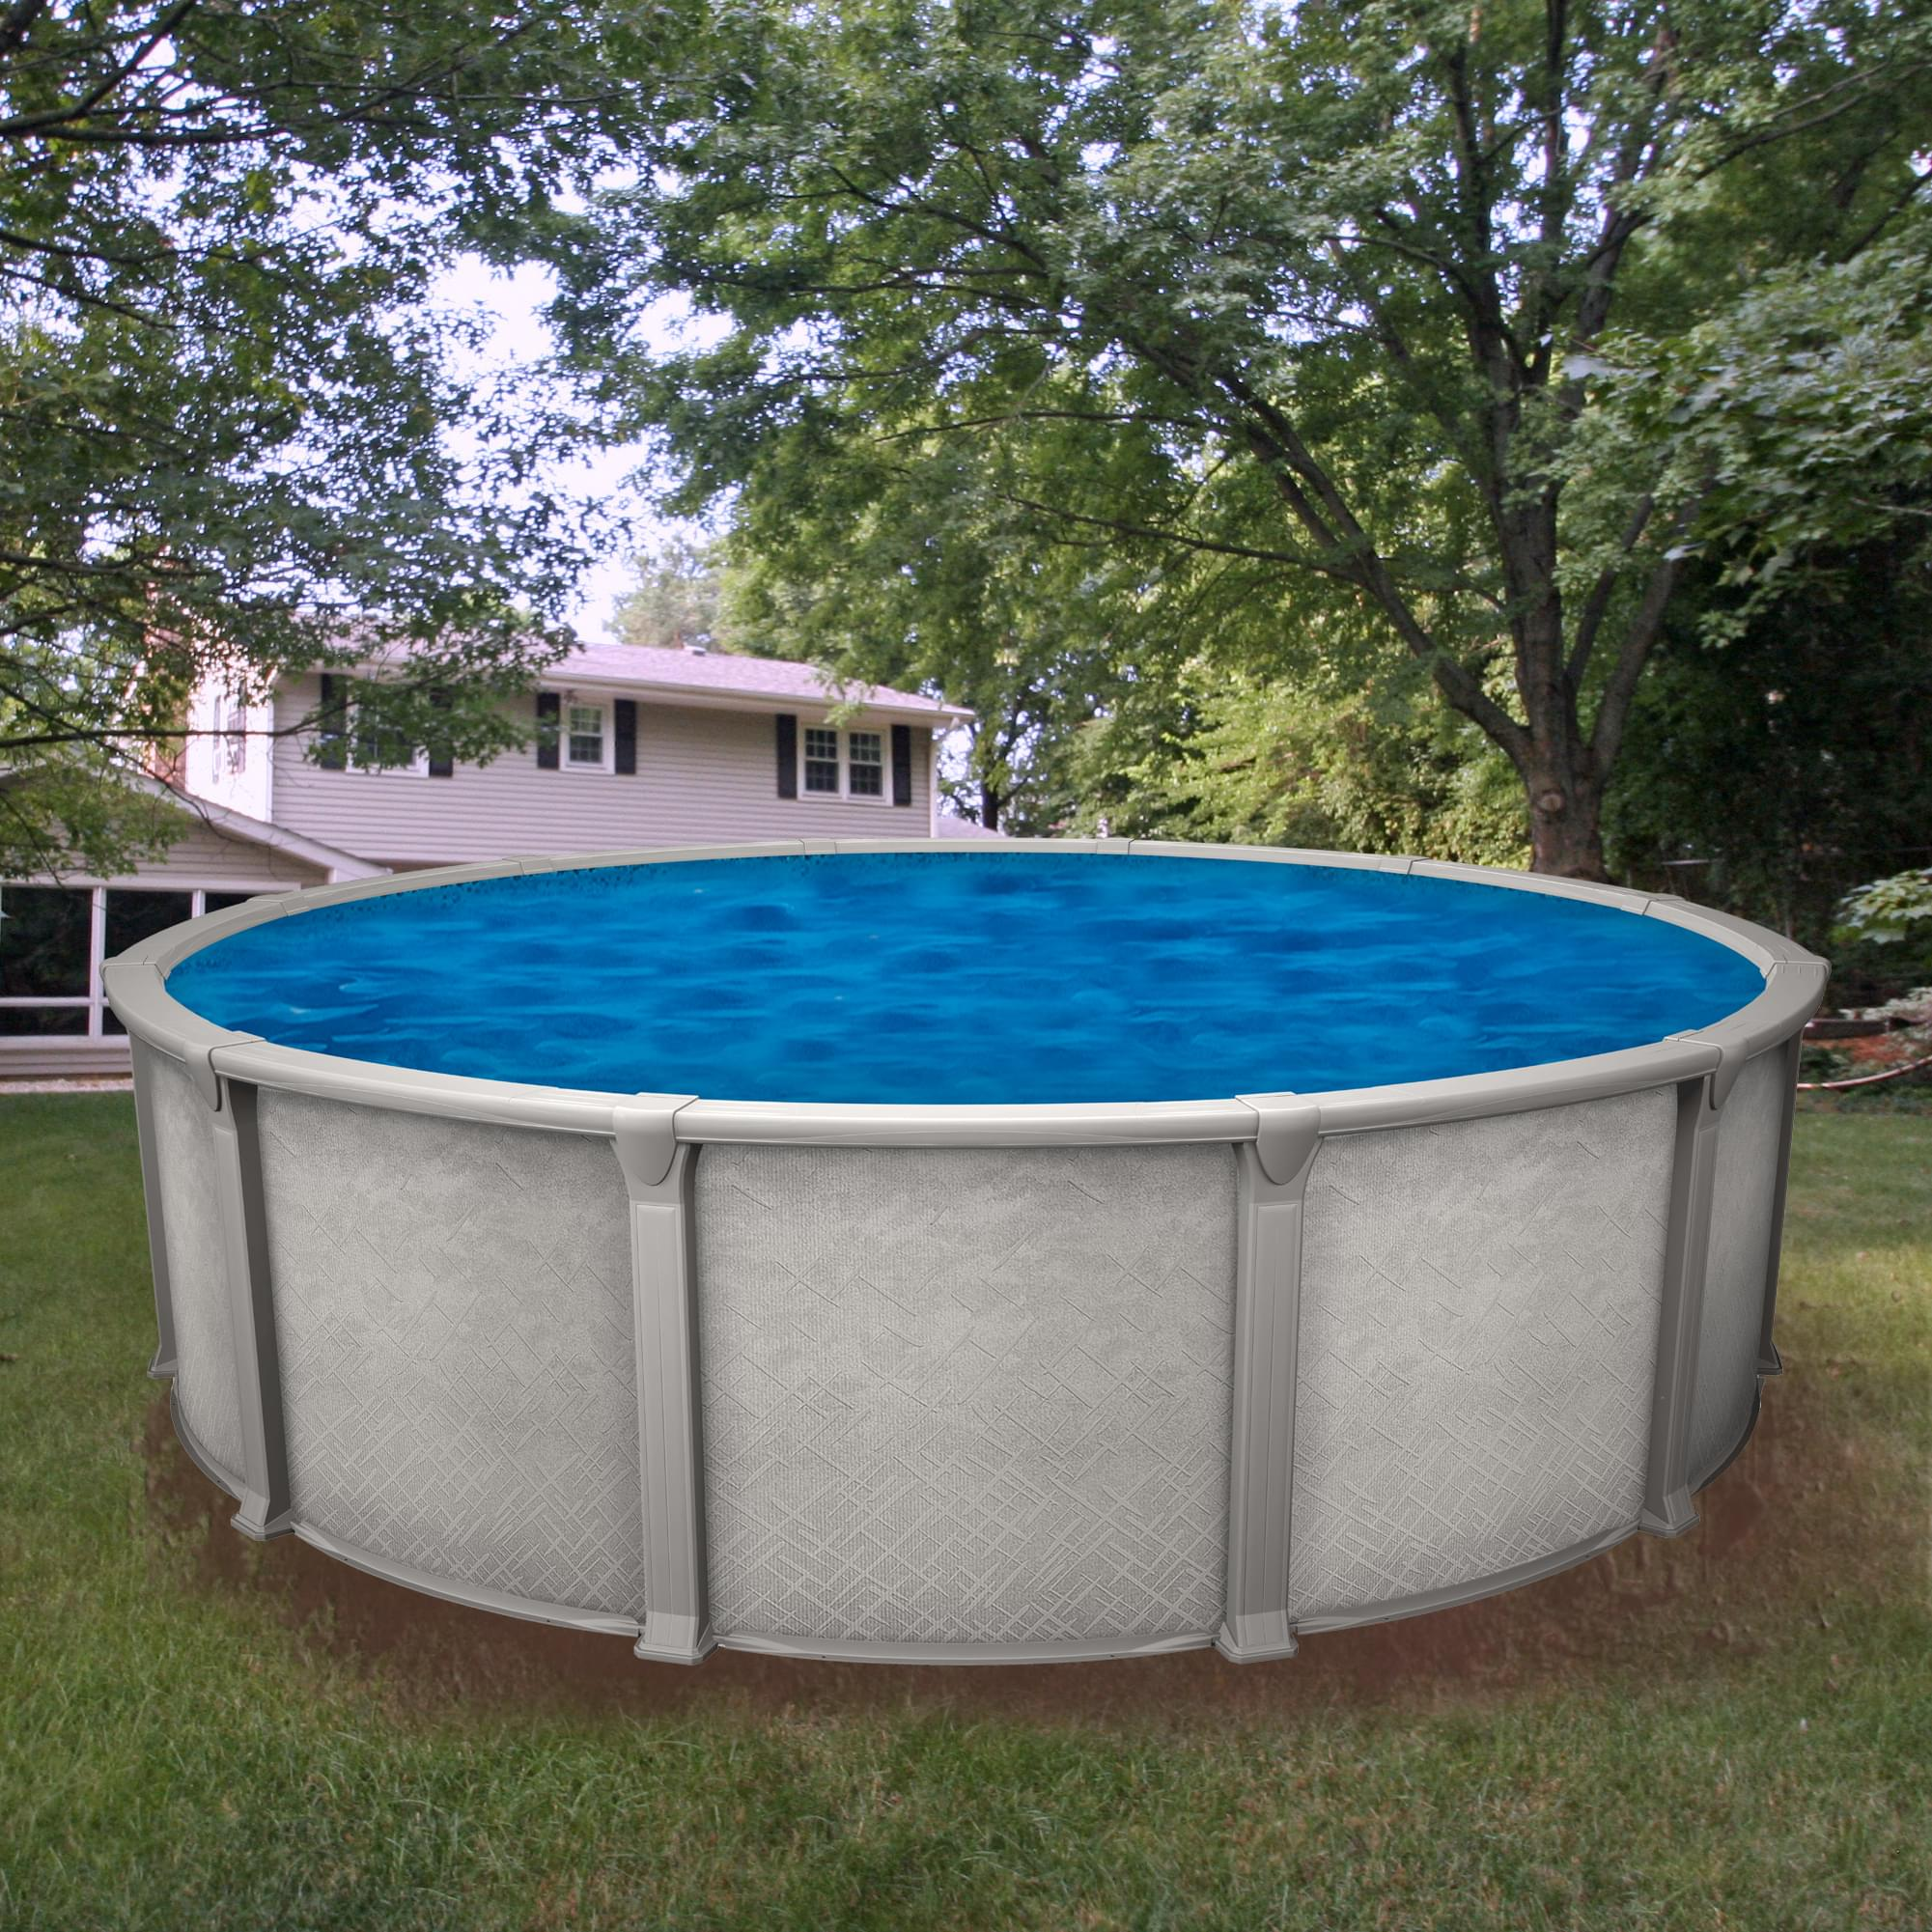 Galaxy 18 ft round above ground pool pool supplies canada for On ground pools